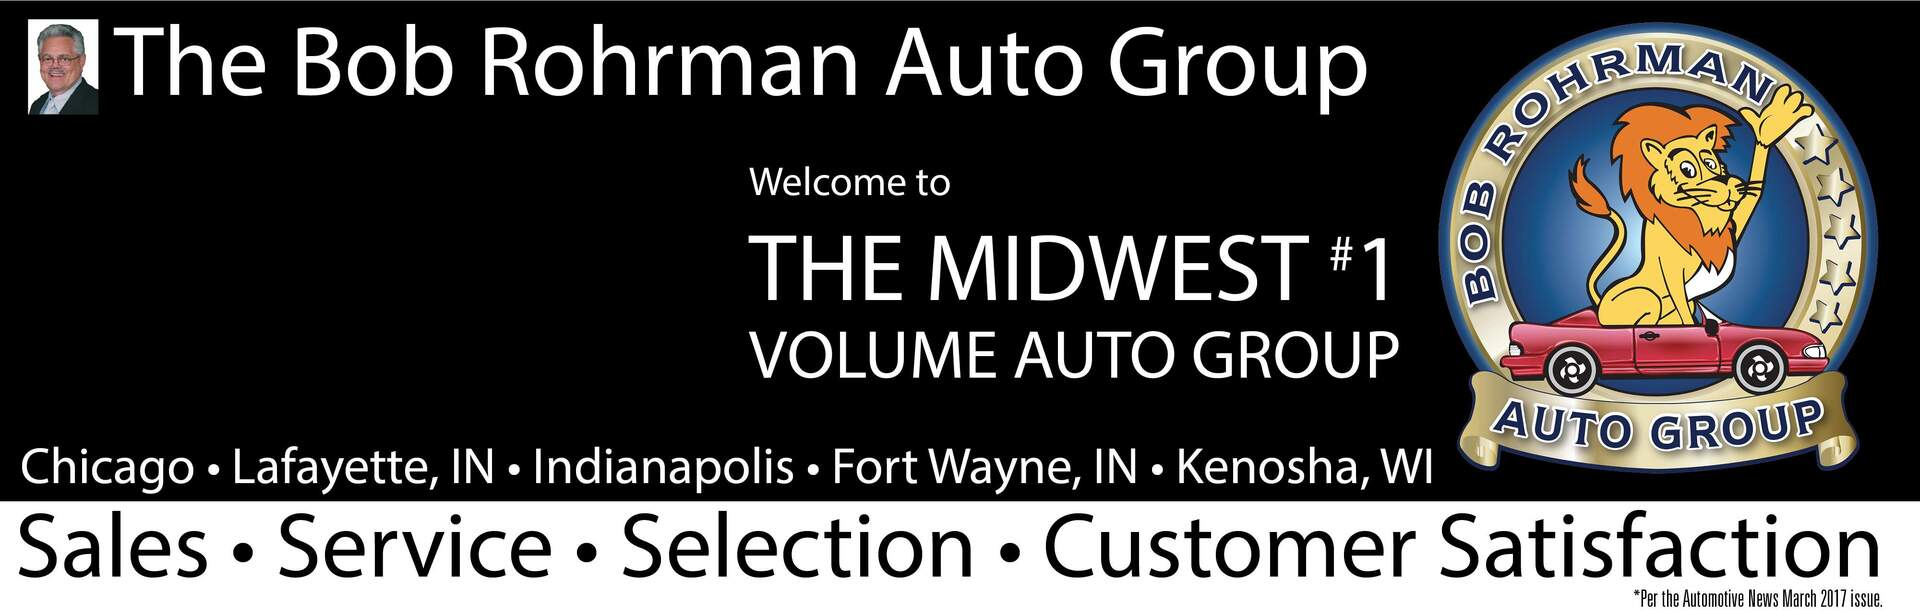 The Midwest's #1 Volume Auto Group